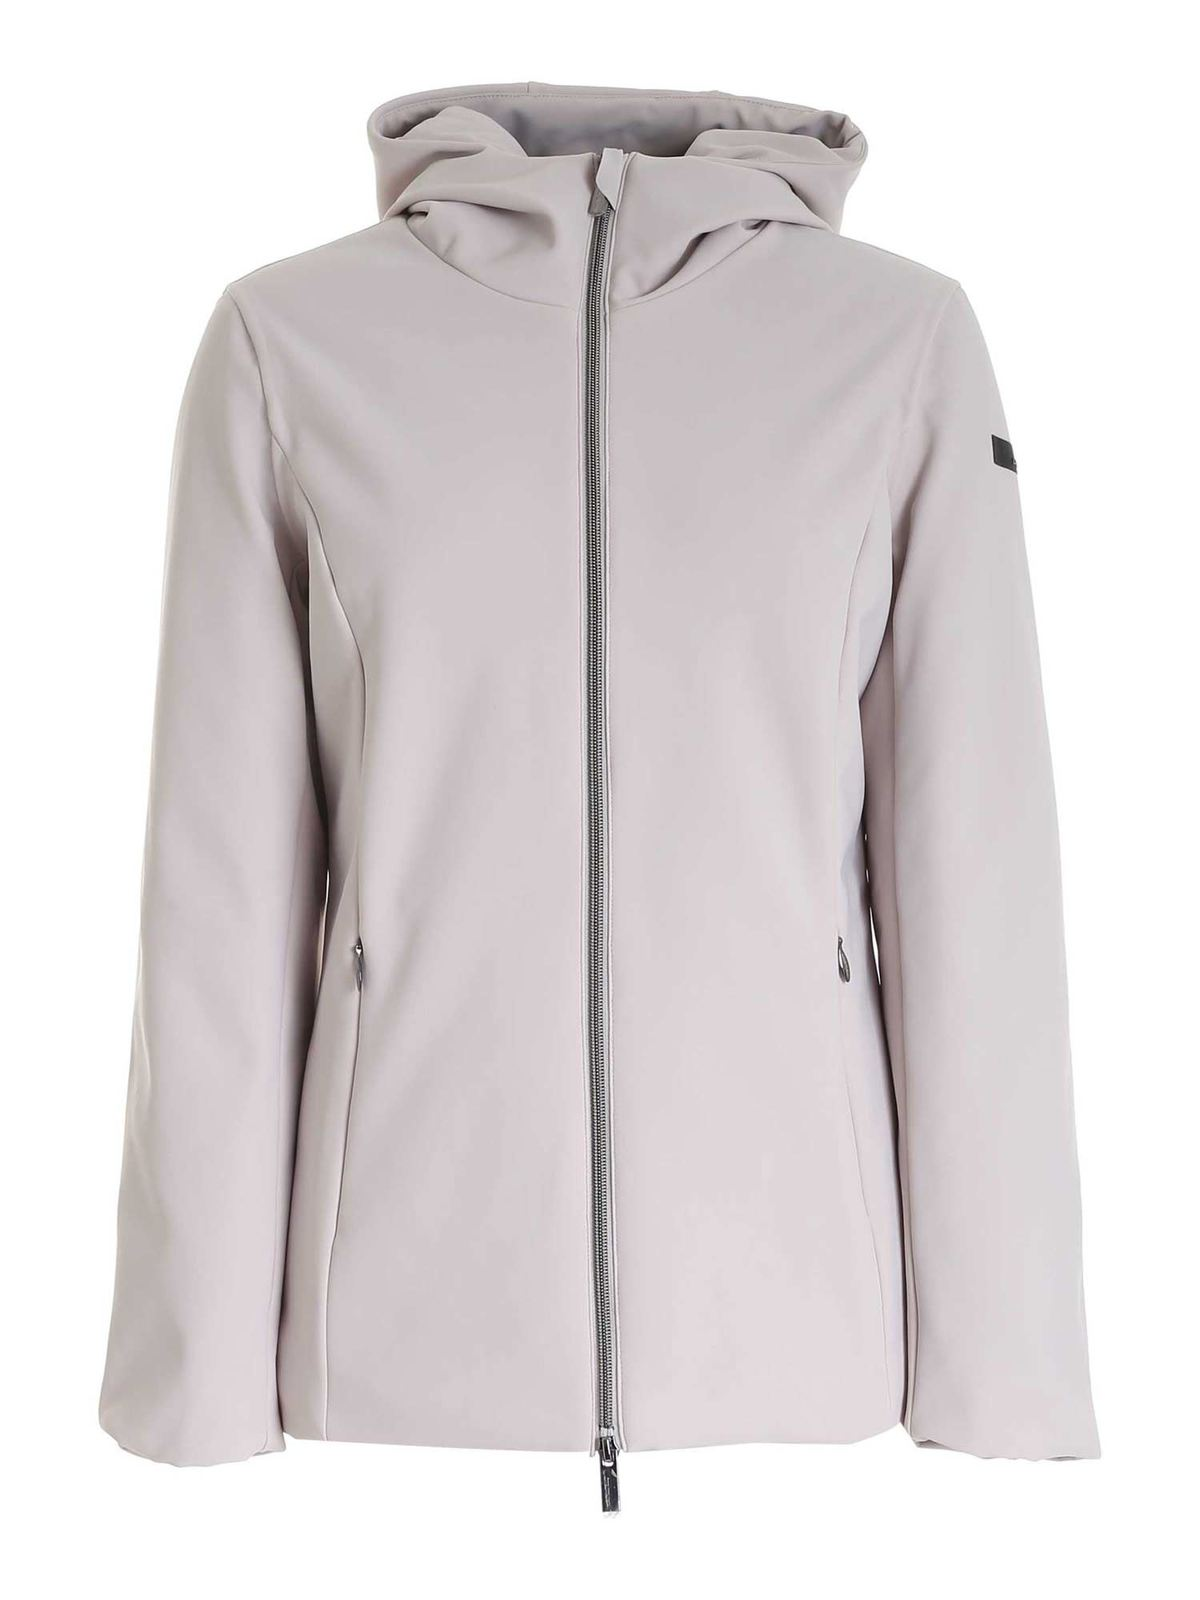 Rrd Roberto Ricci Designs Winter Storm Lady Jacket In Ivory Color In Cream